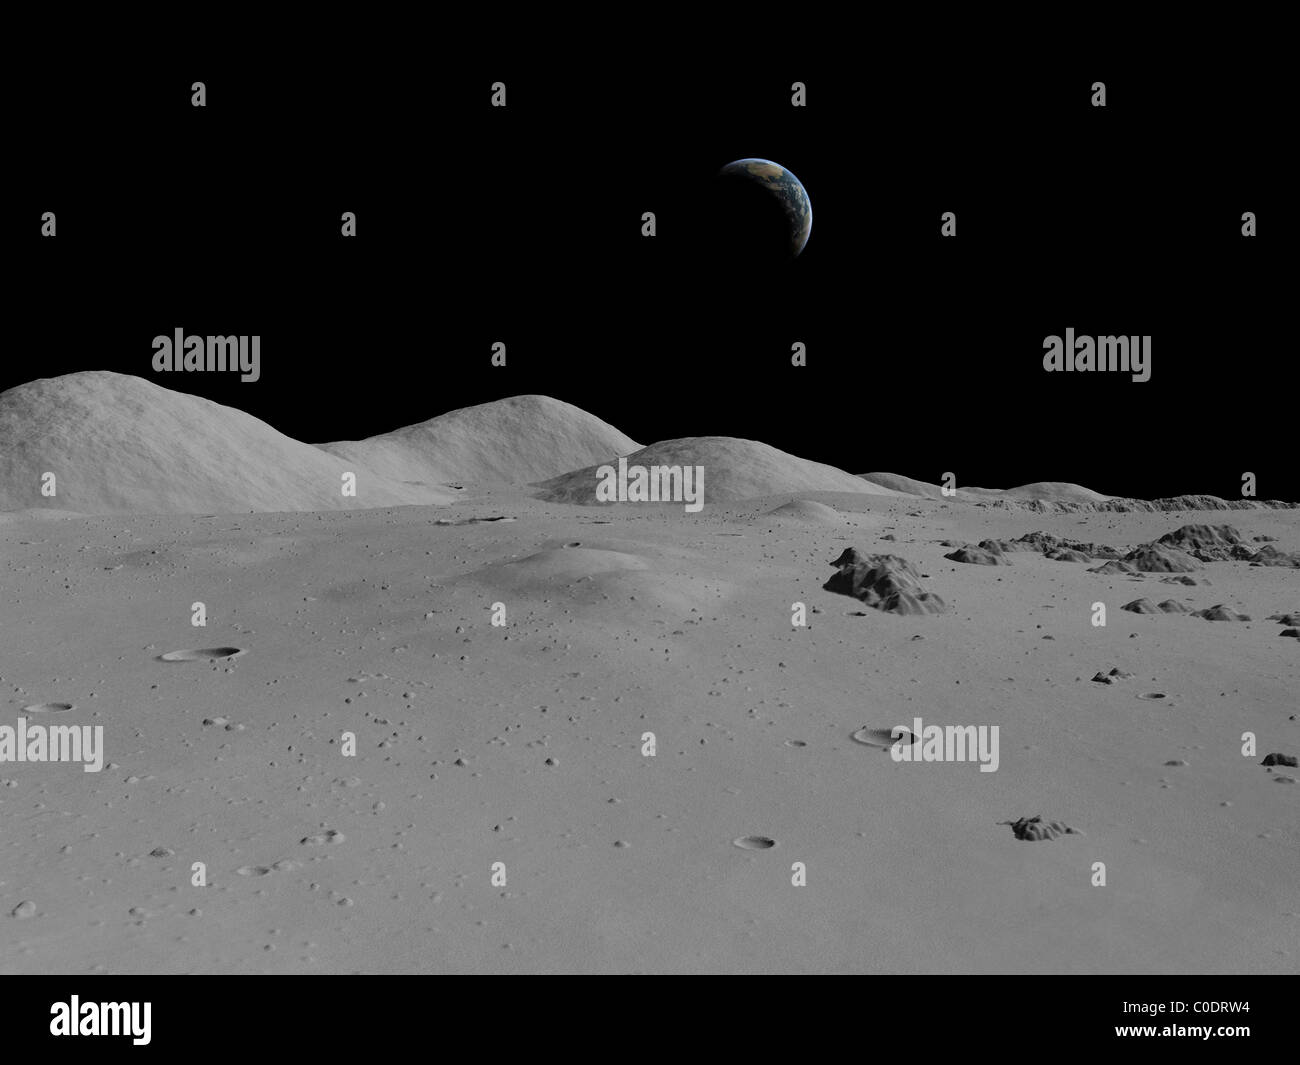 Artist's concept of a view across the surface of the Moon towards Earth in the distance. - Stock Image